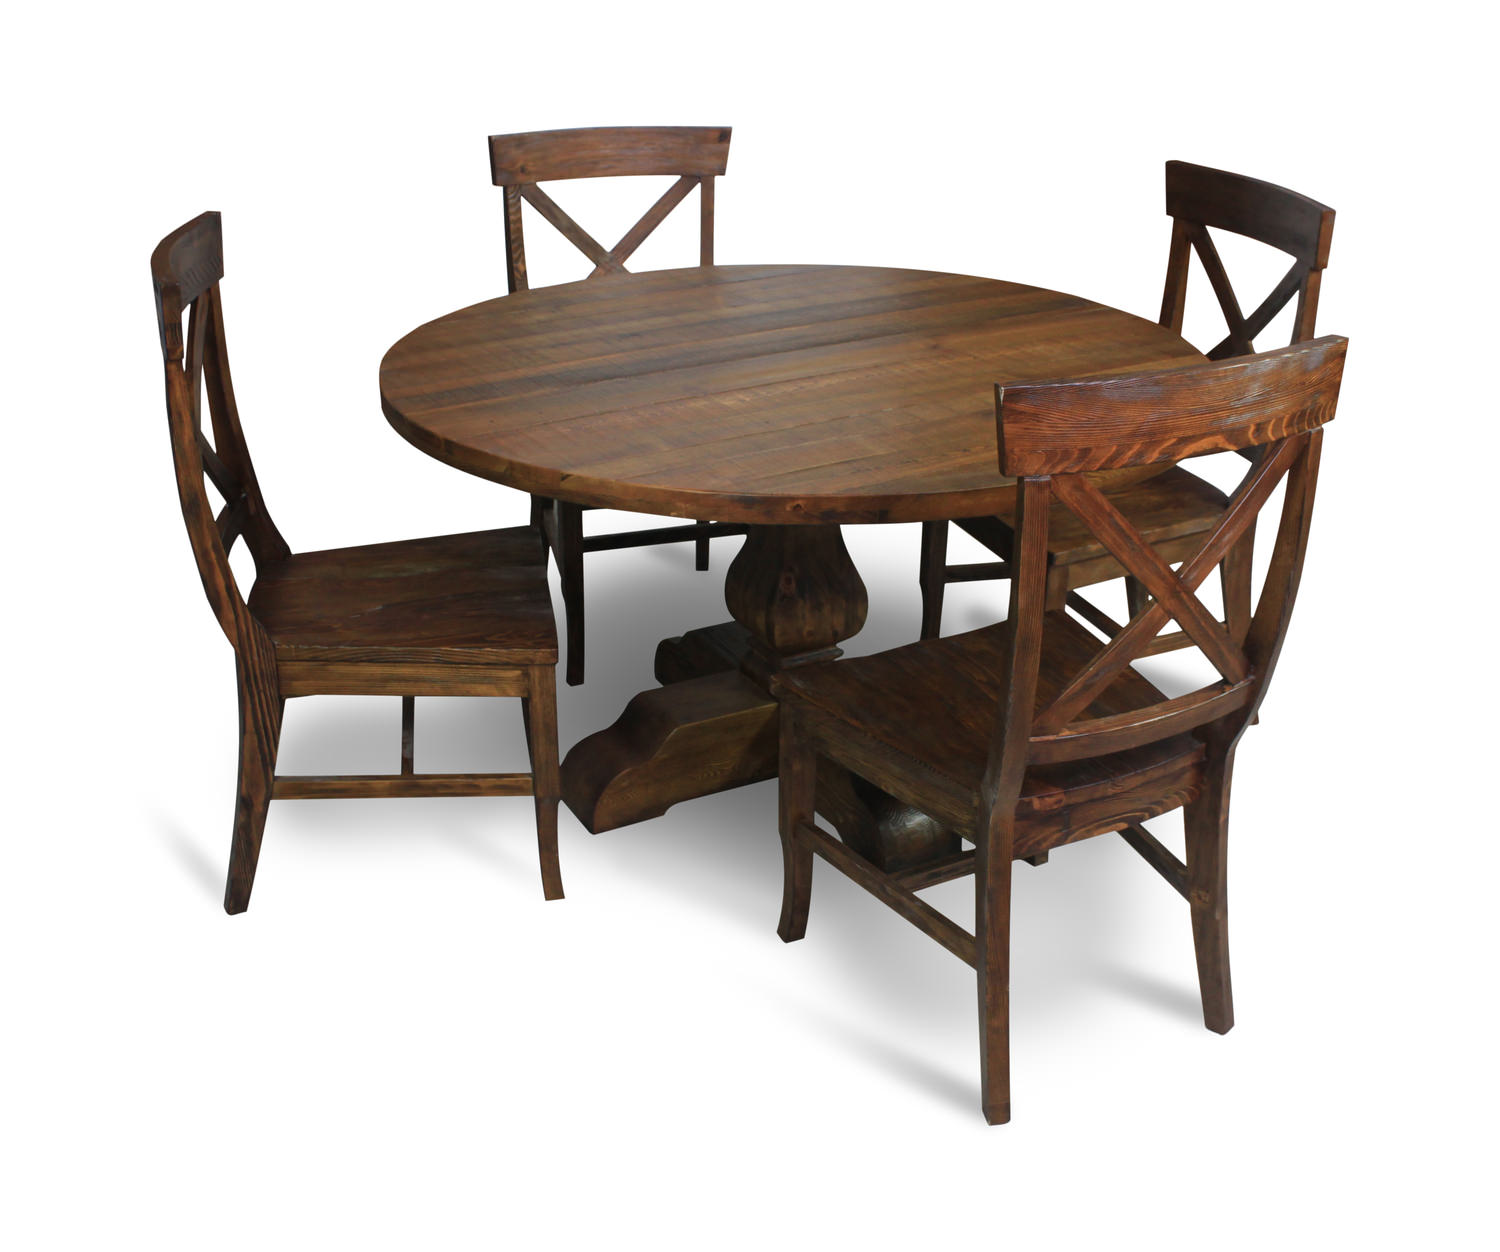 Pineridge 54 Round Table With 4 Chairs Hom Furniture Furniture Stores In Minneapolis